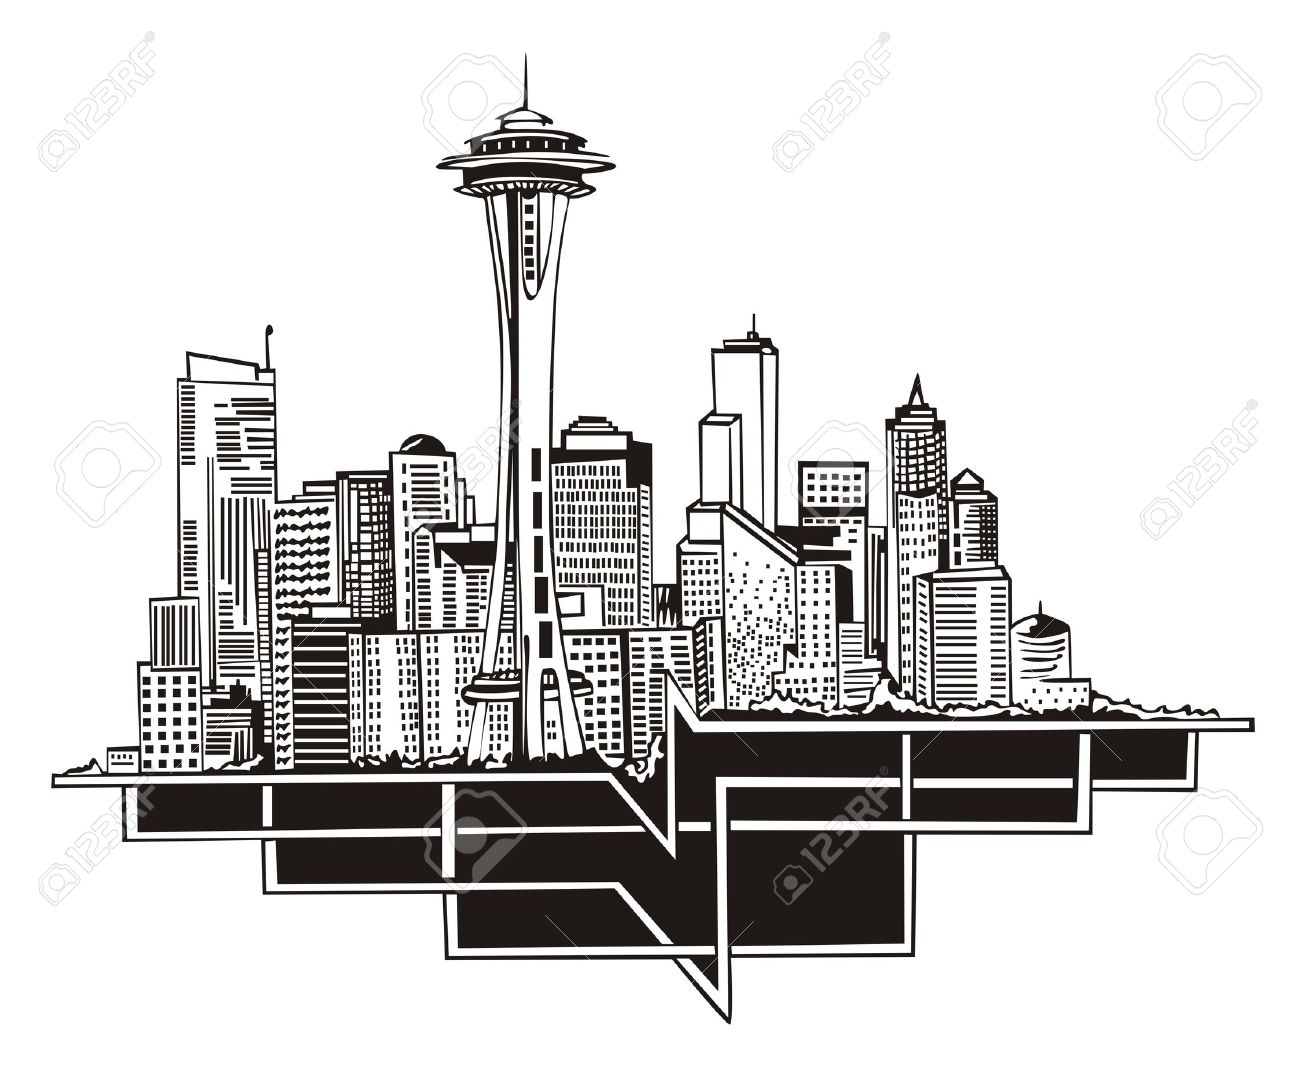 Seattles clipart graphic transparent download 19+ Seattle Clip Art | ClipartLook graphic transparent download